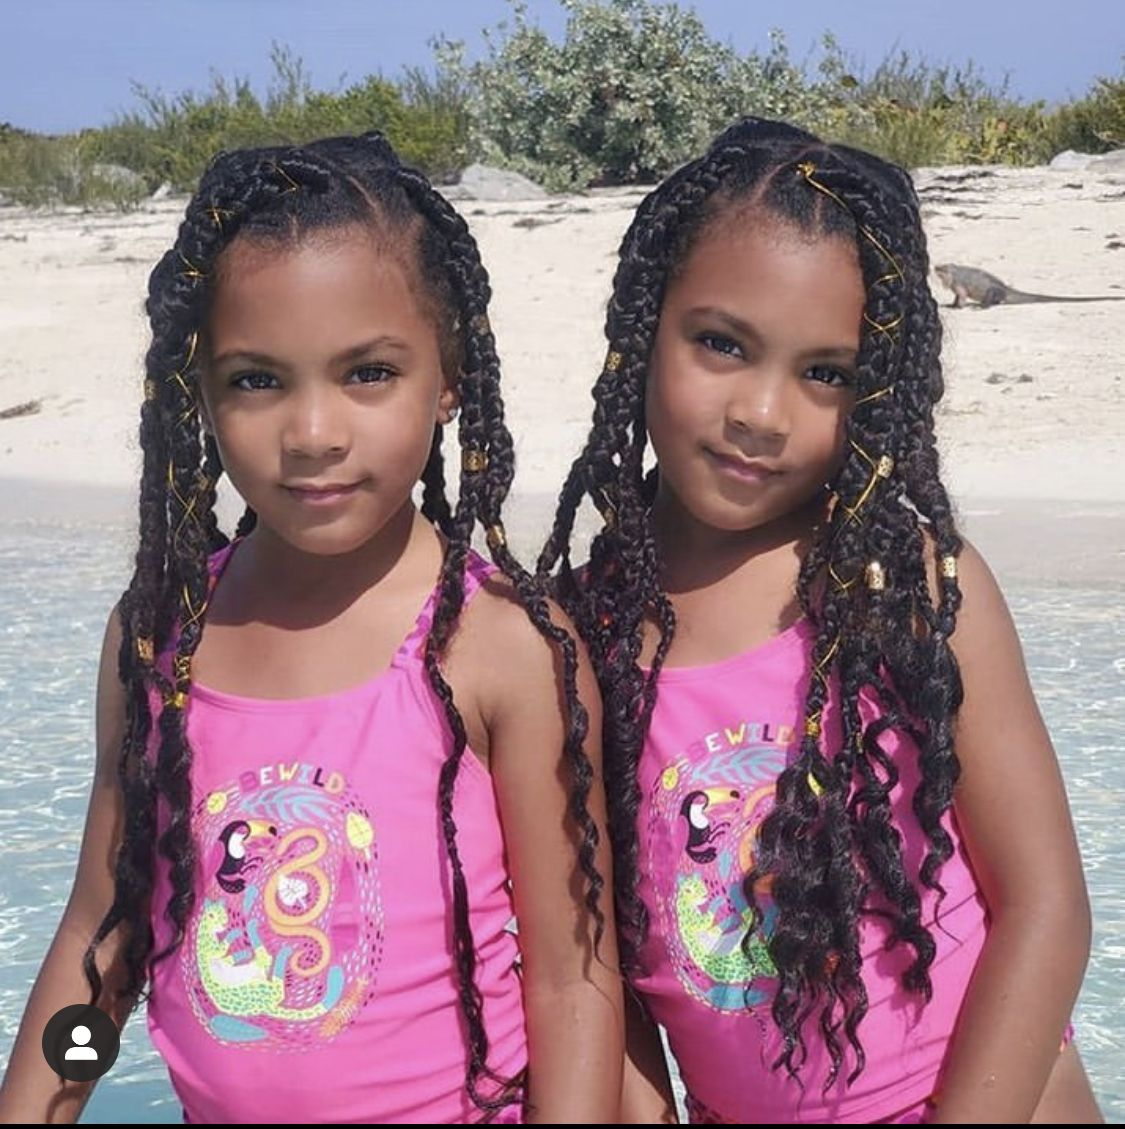 Pin By Ribbon Speights On Skin In 2020 Kids Hairstyles